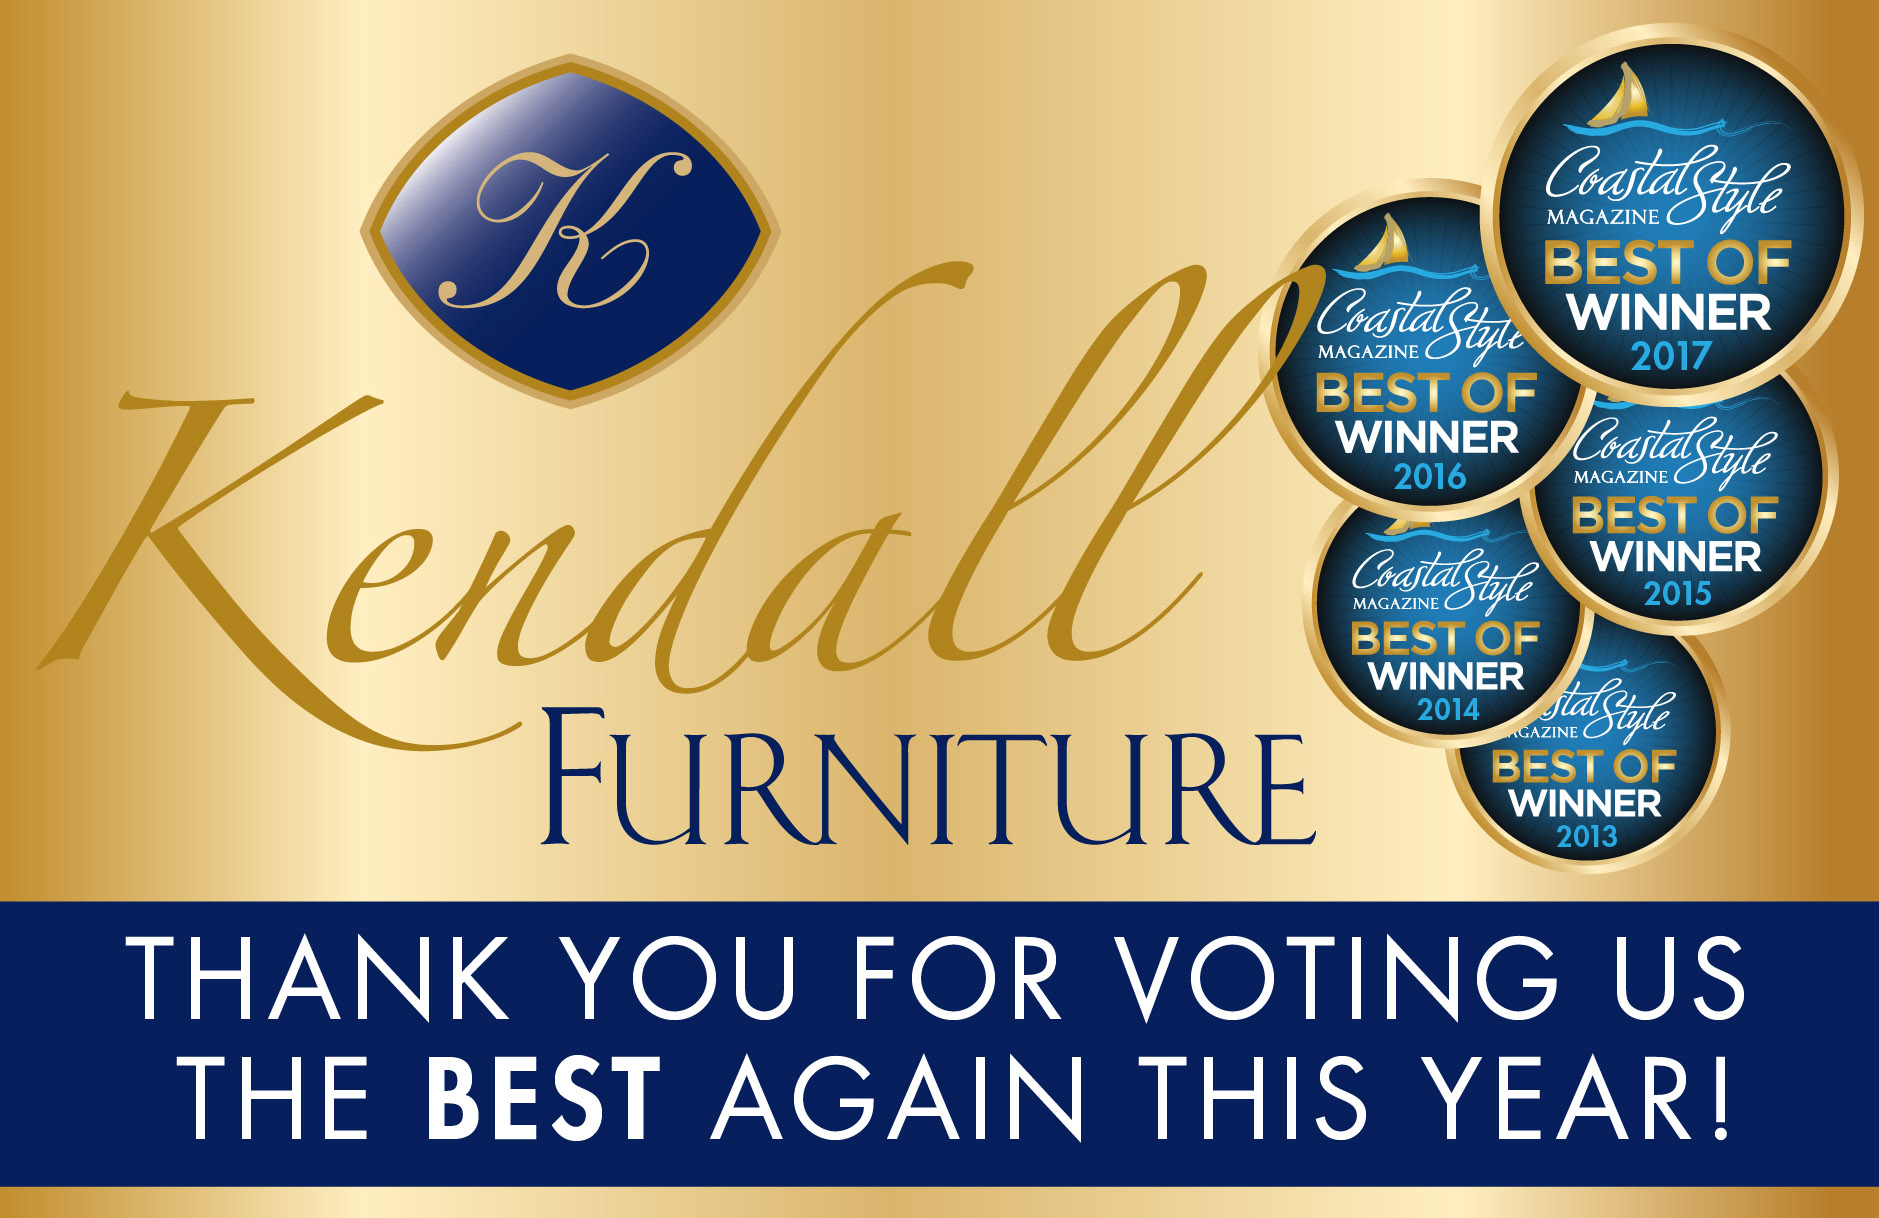 Kendall Furniture Best of